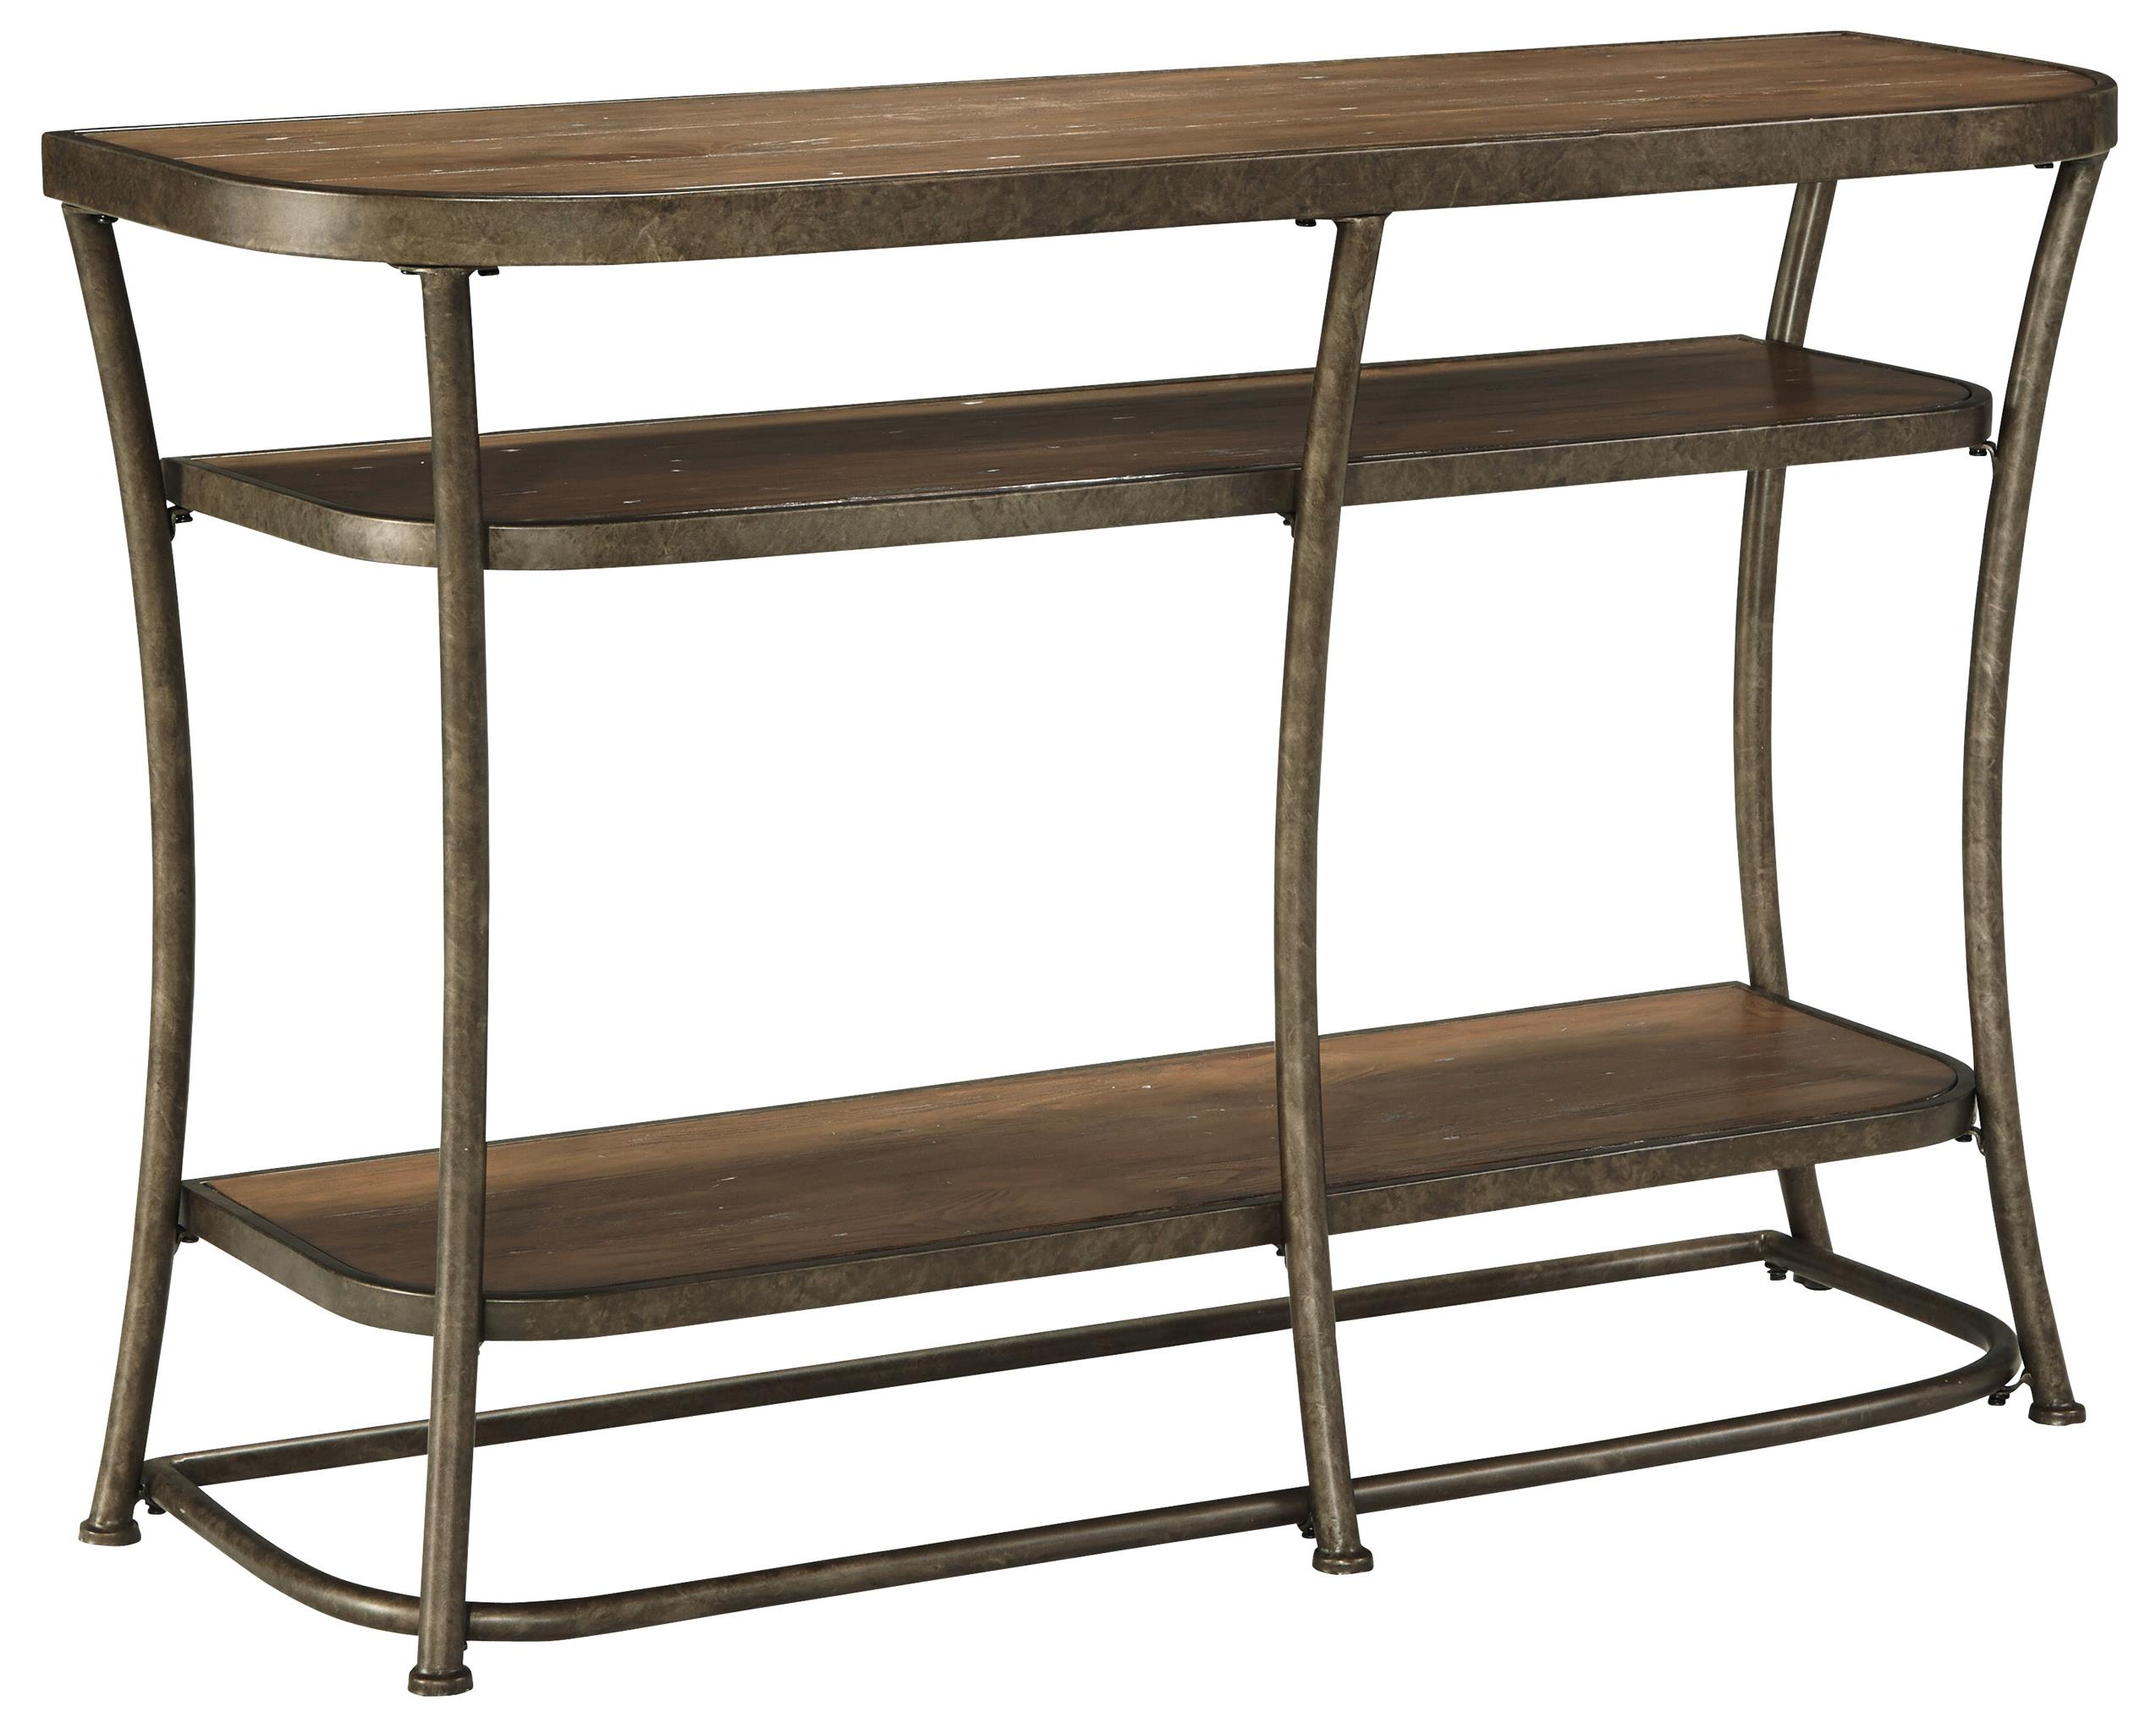 Signature design by ashley narina t805 4 rustic metal for Sofa table vs console table